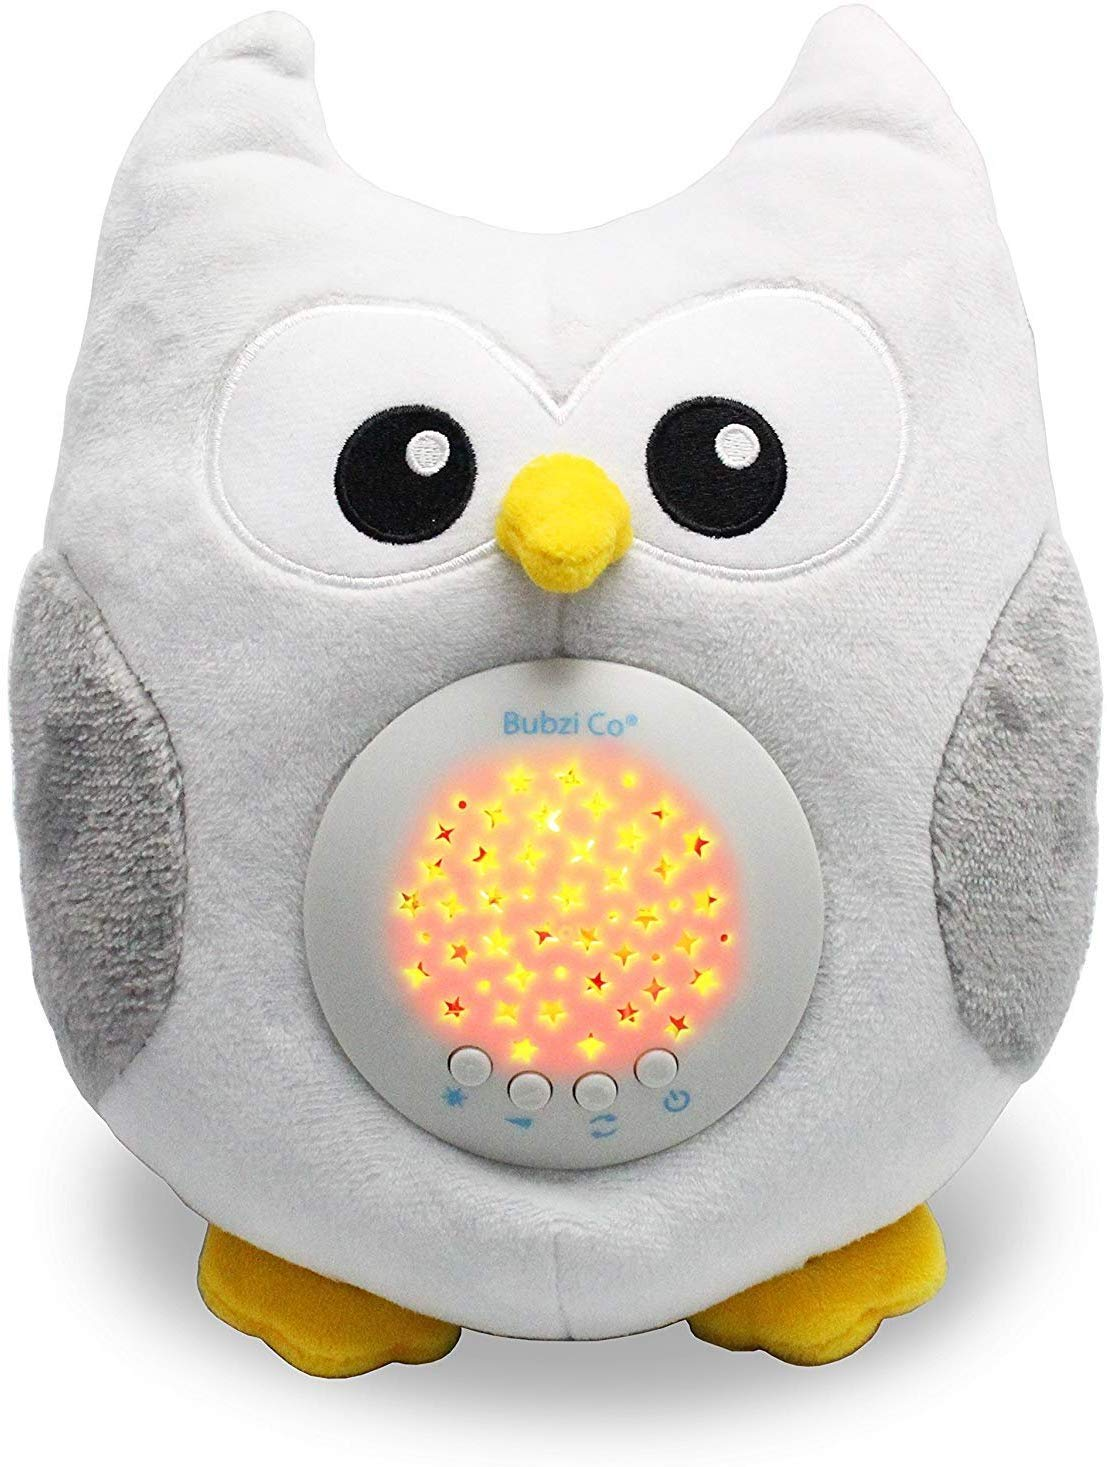 Baby Soother Toys Owl White Noise Sound Machine, Toddler Sleep Aid Night Light, Unique Baby Girl Gifts & Baby Boy Gifts…